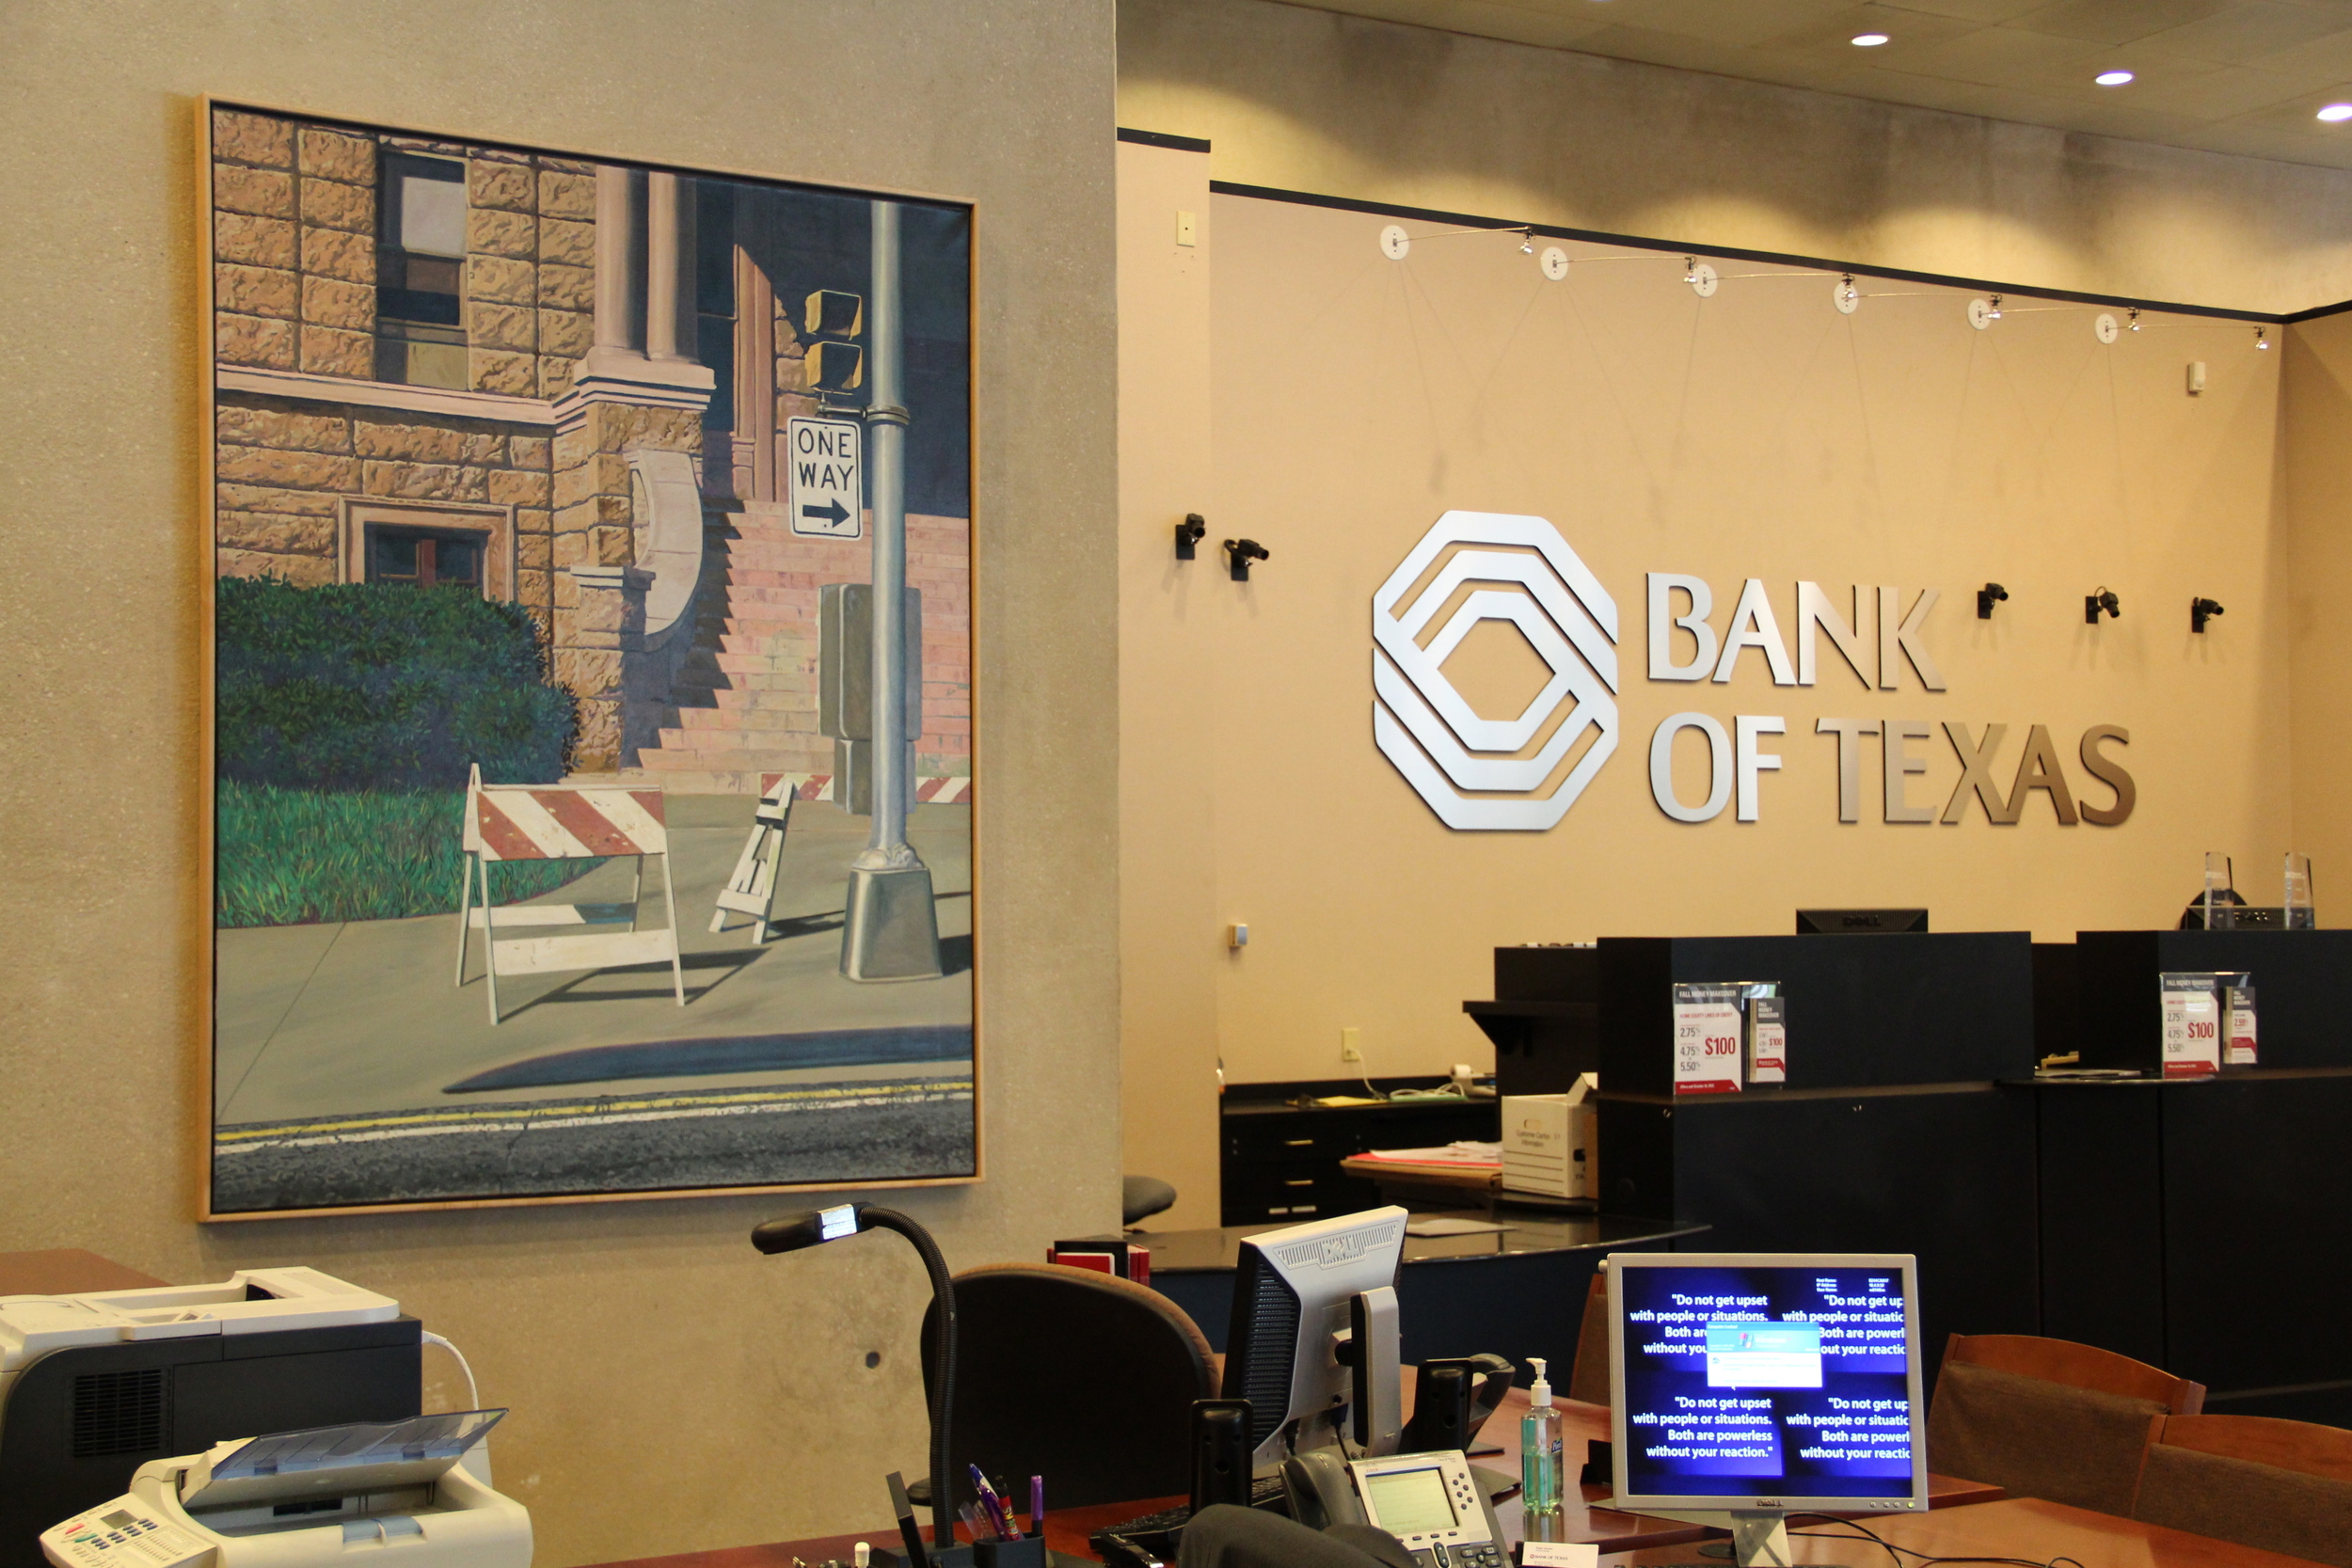 Bank of Texas lobby at 801 Cherry Street #100 Fort Worth, TX 76102.